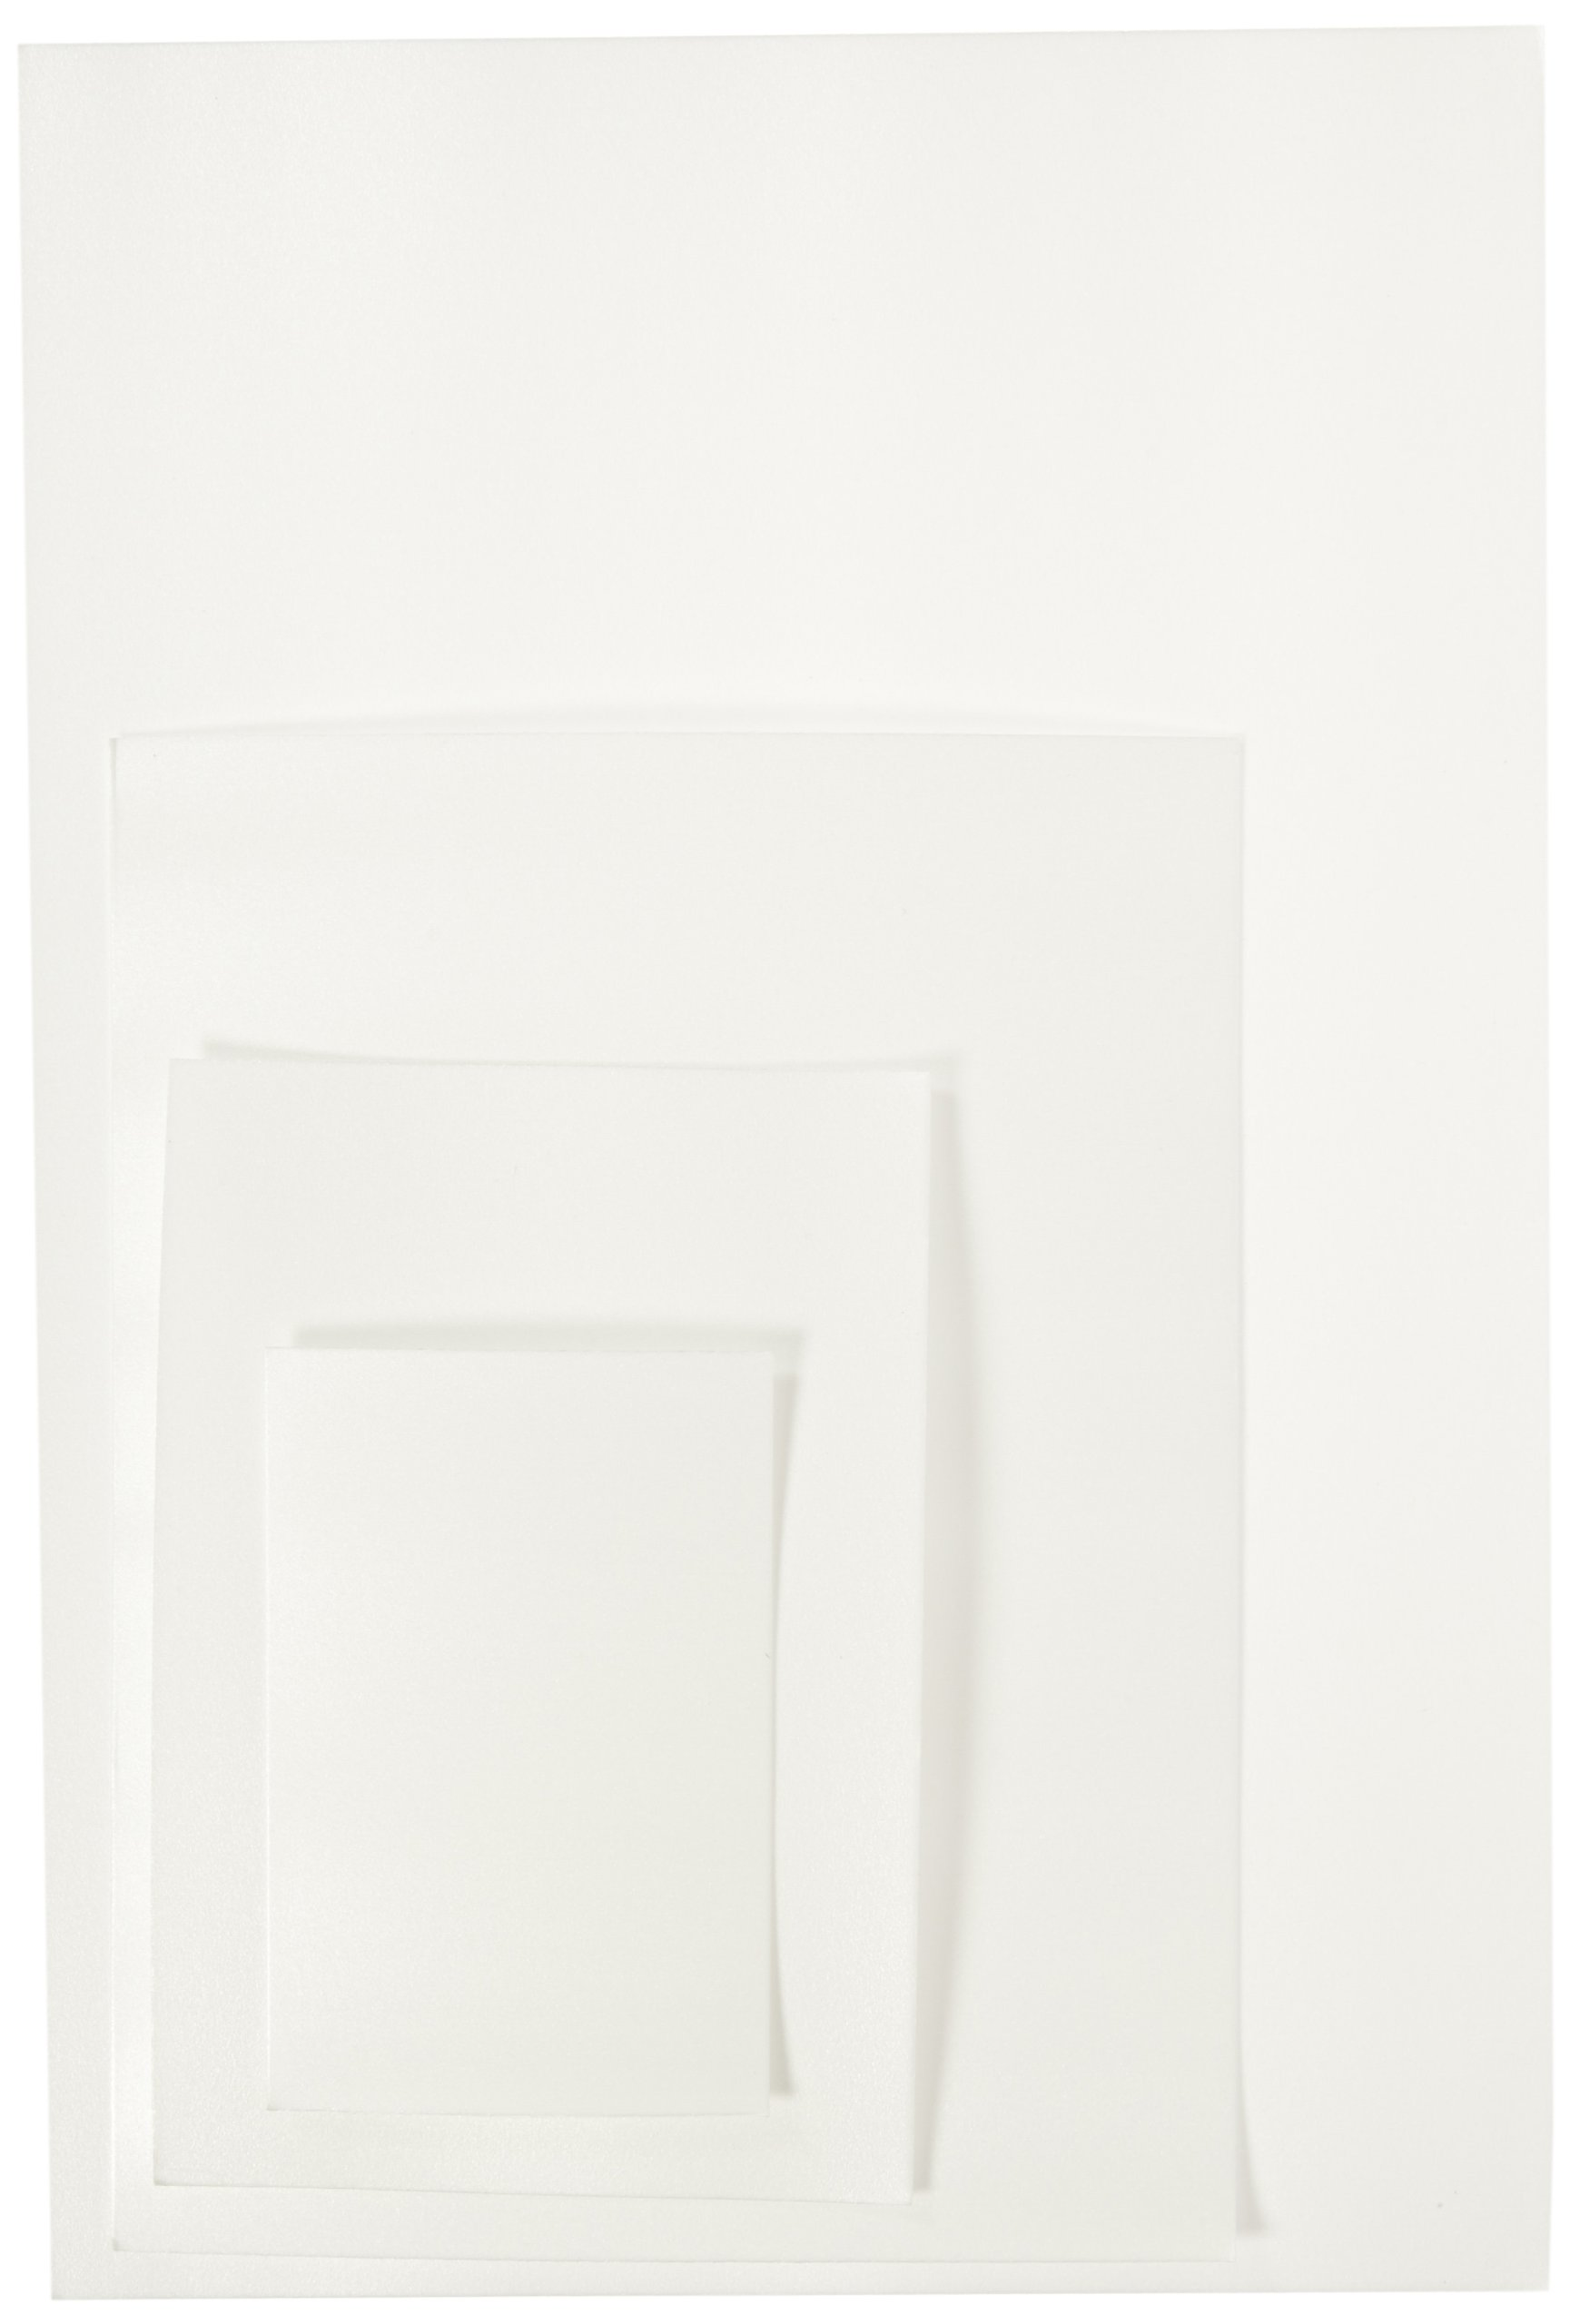 Sax Foam Printing Plates Classroom Pack - Assorted Sizes - Set of 304 - White